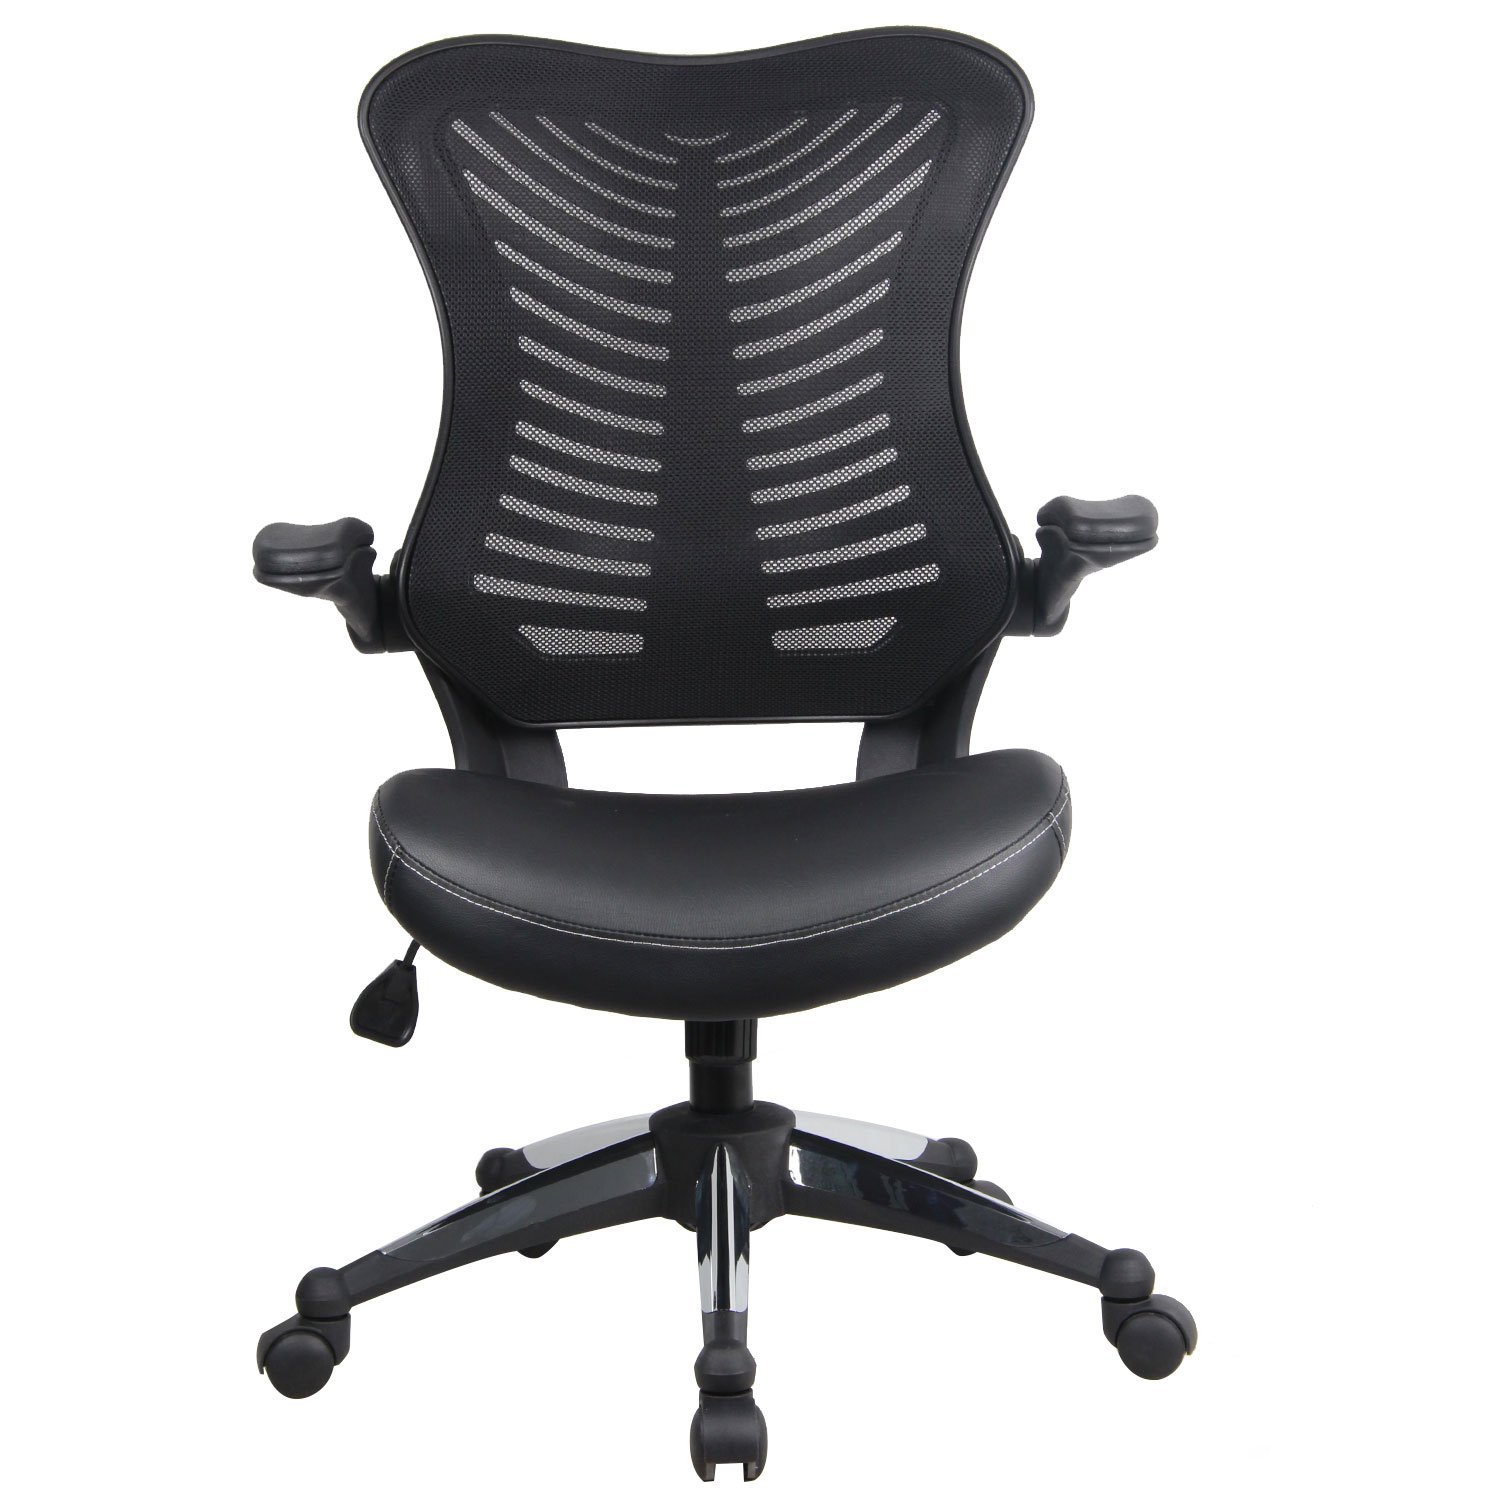 Homdox Ergonomic Office Chair, Adjustable Drafting Chair Breathable Mesh Fabric Chair Flip-up Padded Armrest with Five Dual-Wheel Handle Mechanism Swivel Height Home Office Chair (Black)